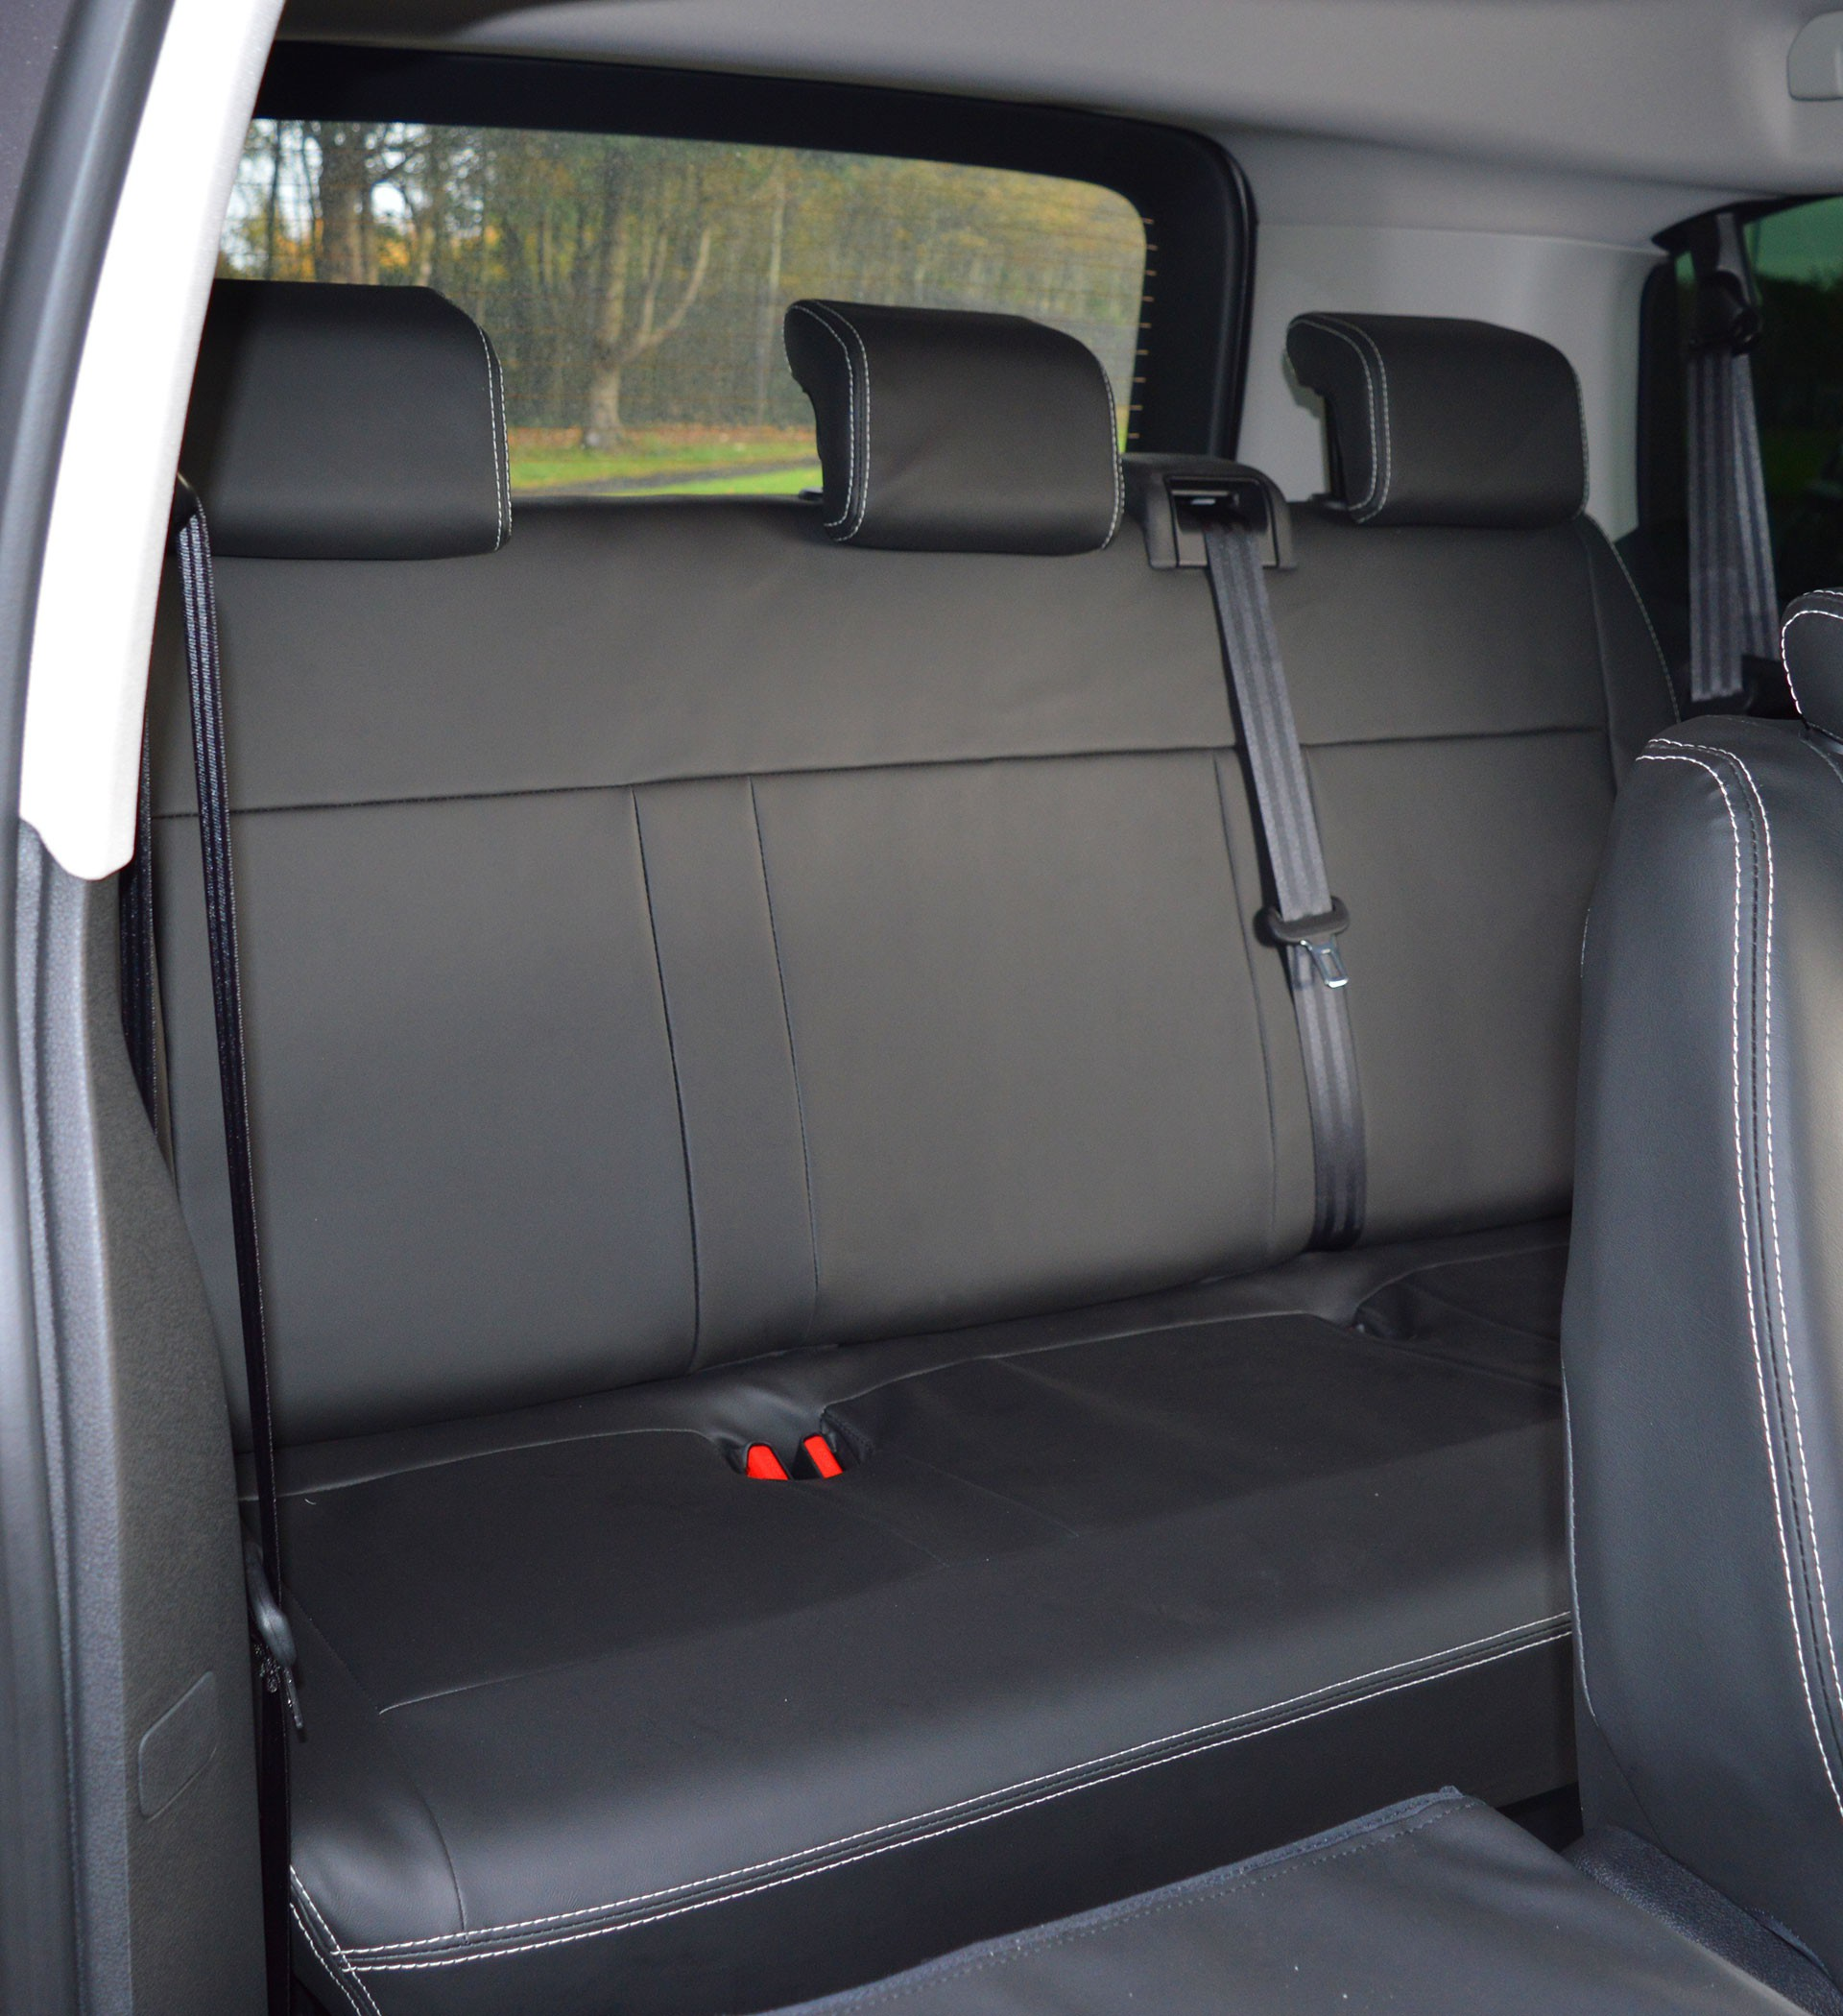 Citroen SpaceTourer Tailored Leatherette Seat Covers for 9 ...